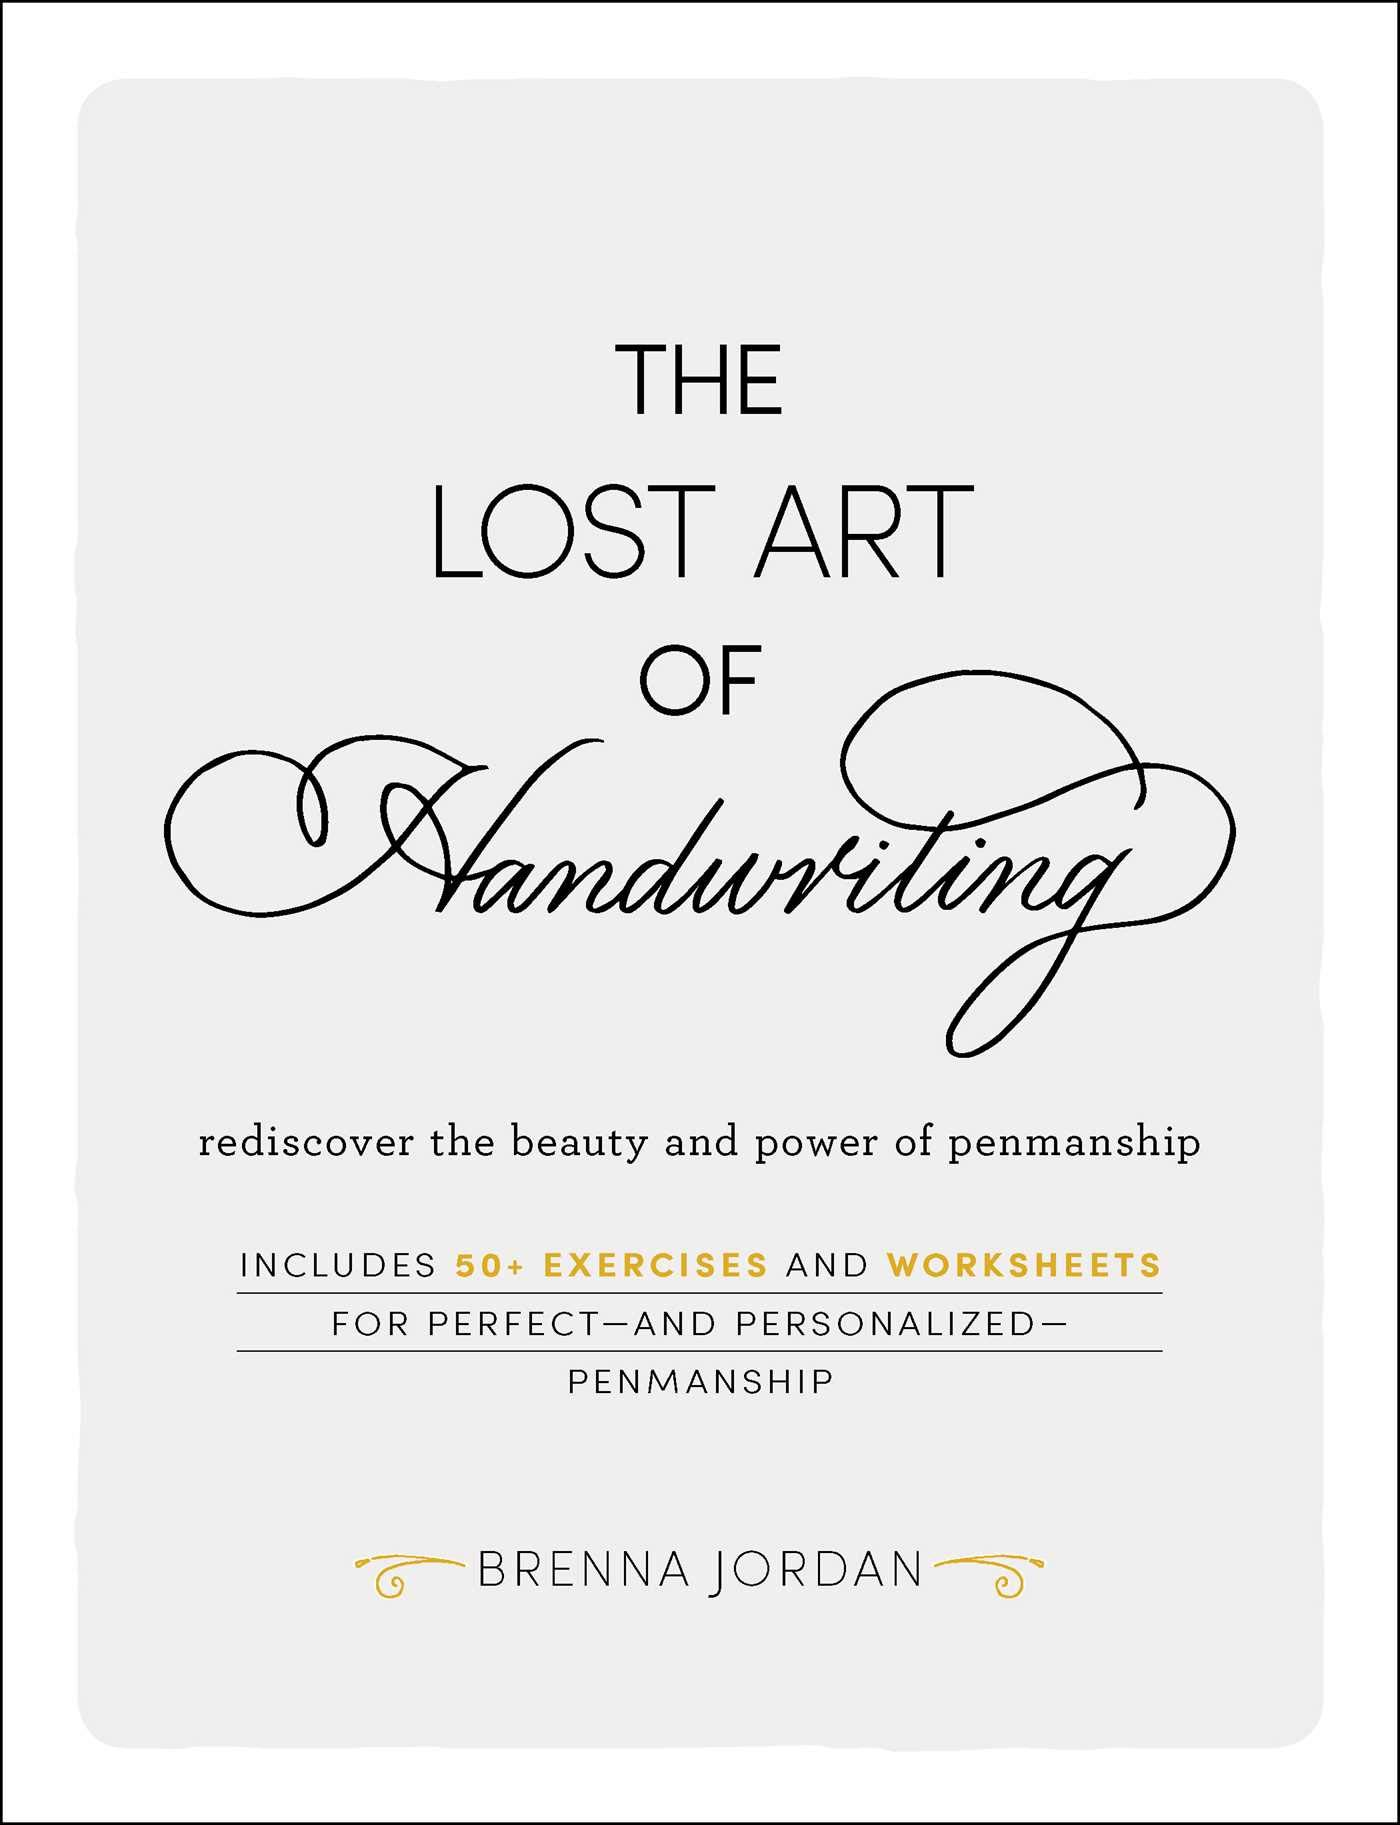 The Lost Art of Handwriting: Rediscover the Beauty and Power of Penmanship por Brenna Jordan